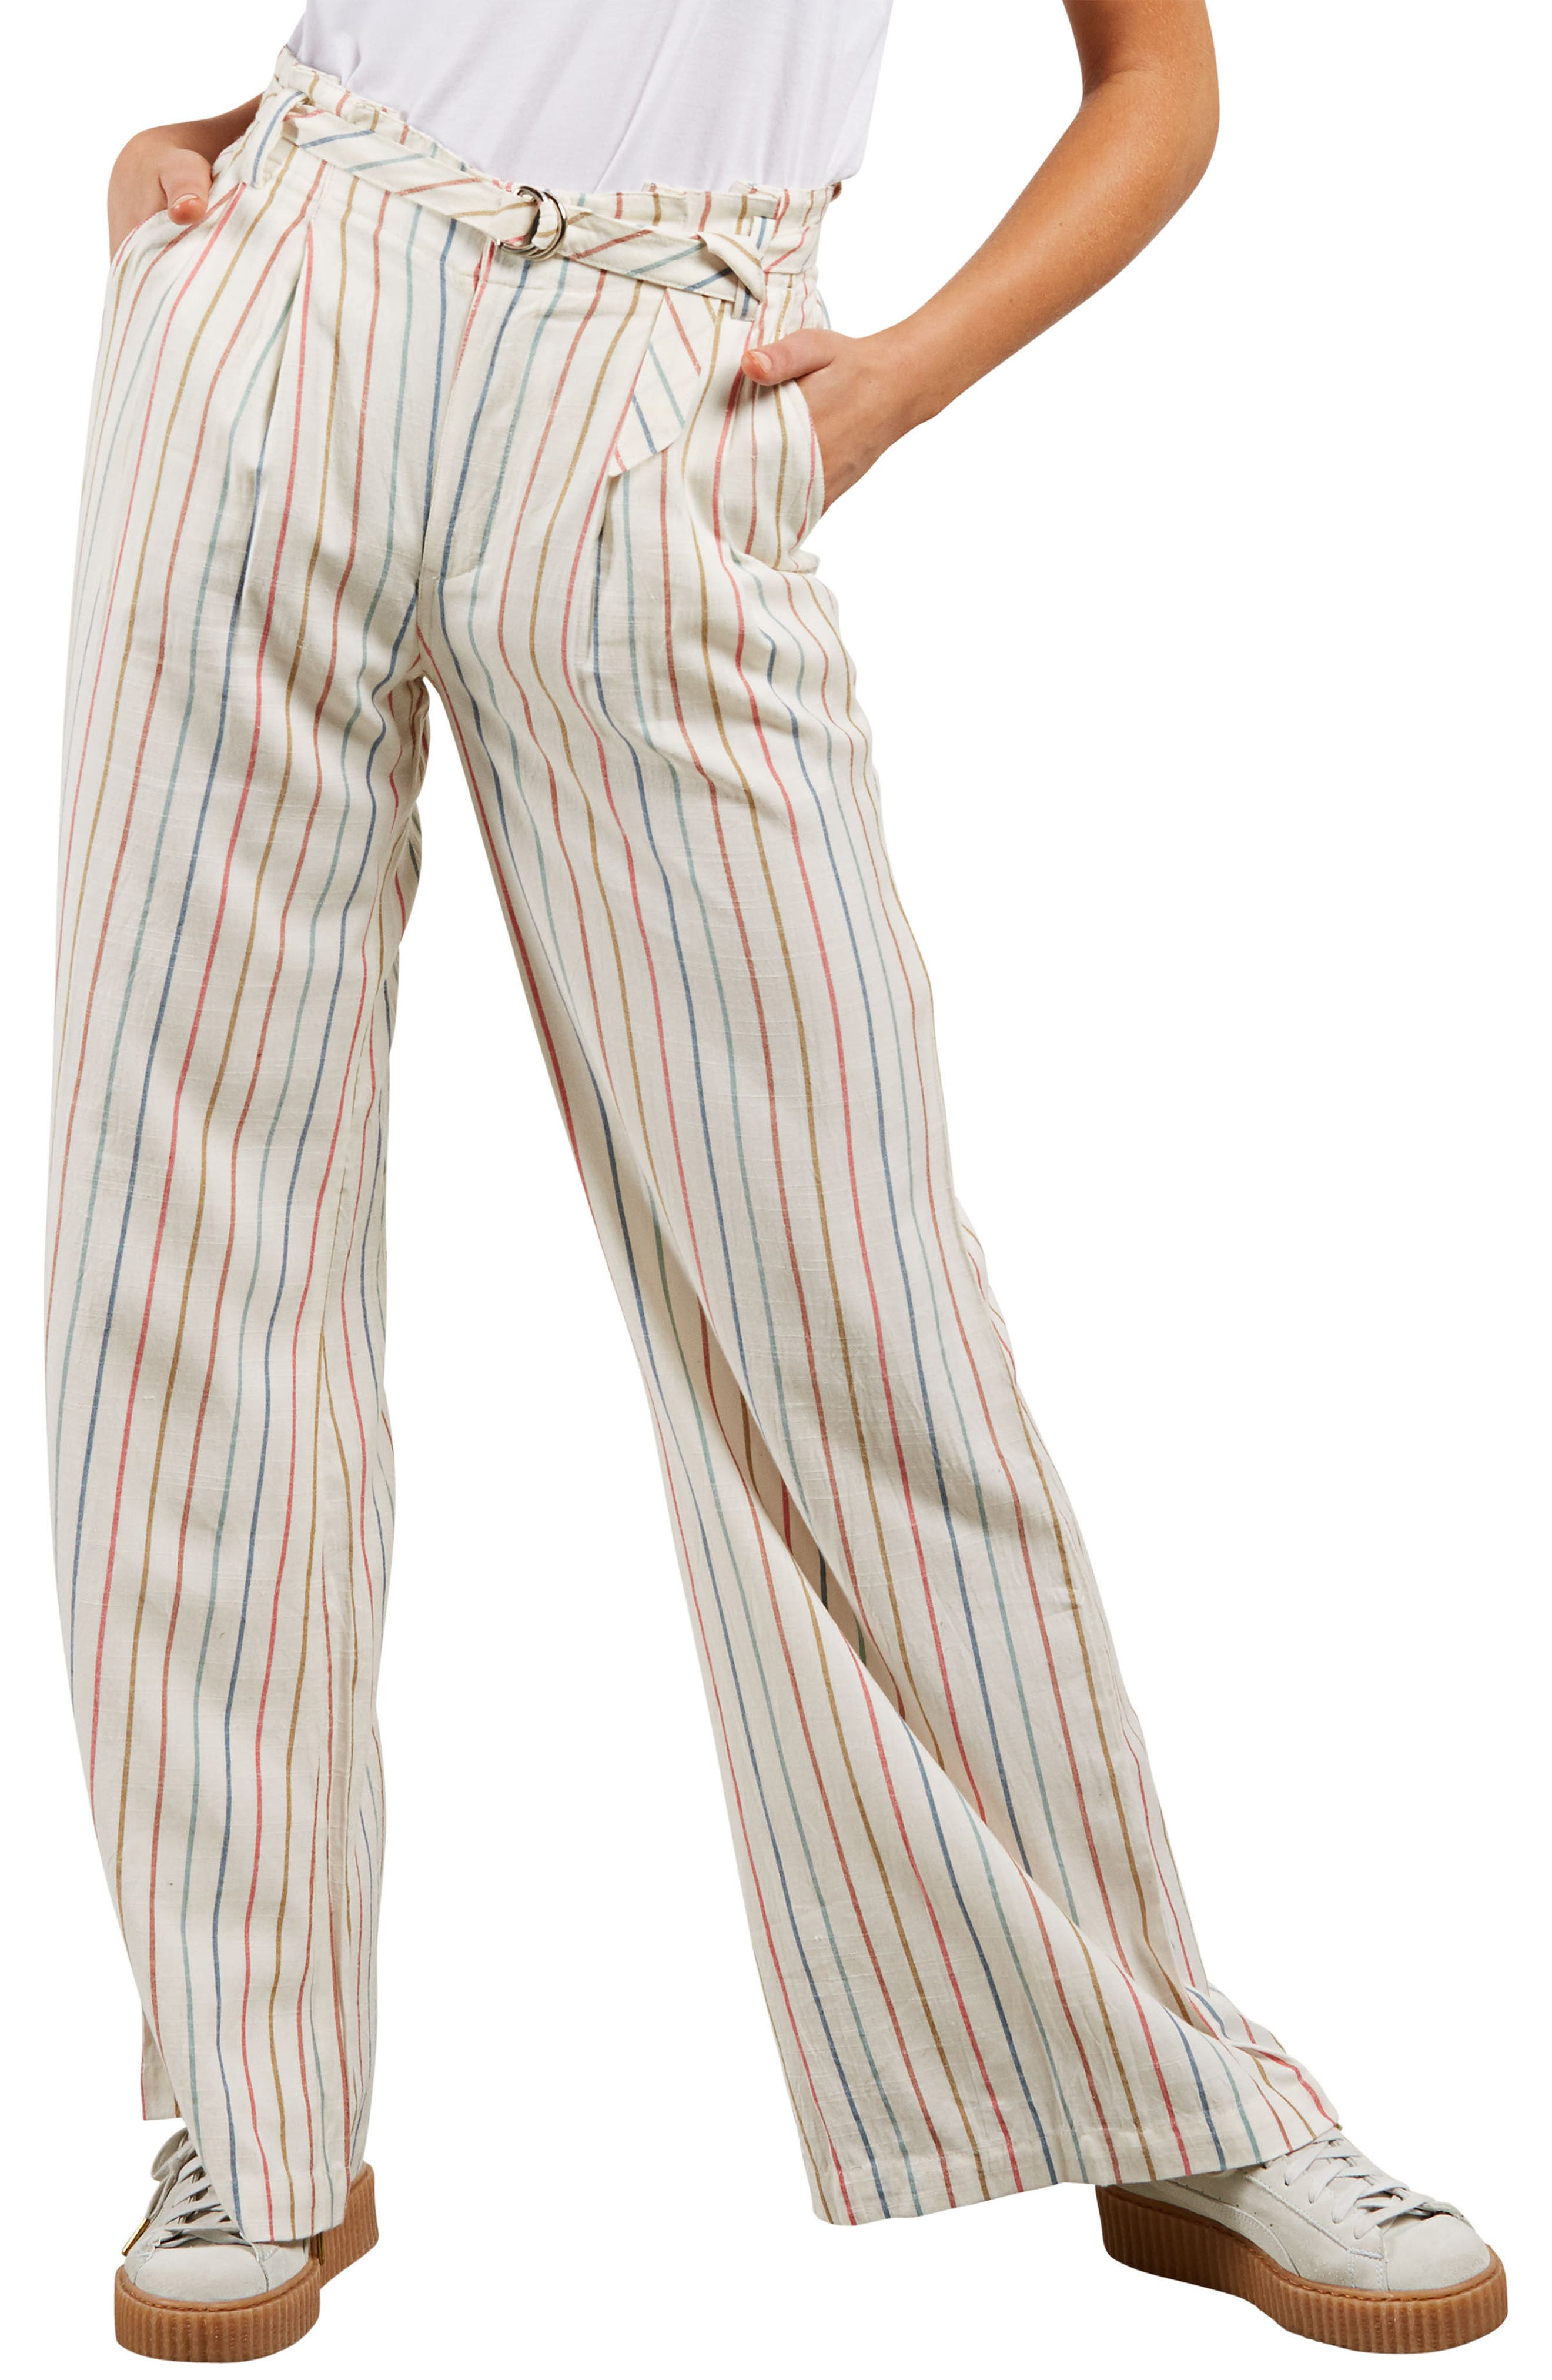 Need Now Stripe Trousers,                             Main thumbnail 1, color,                             Multi